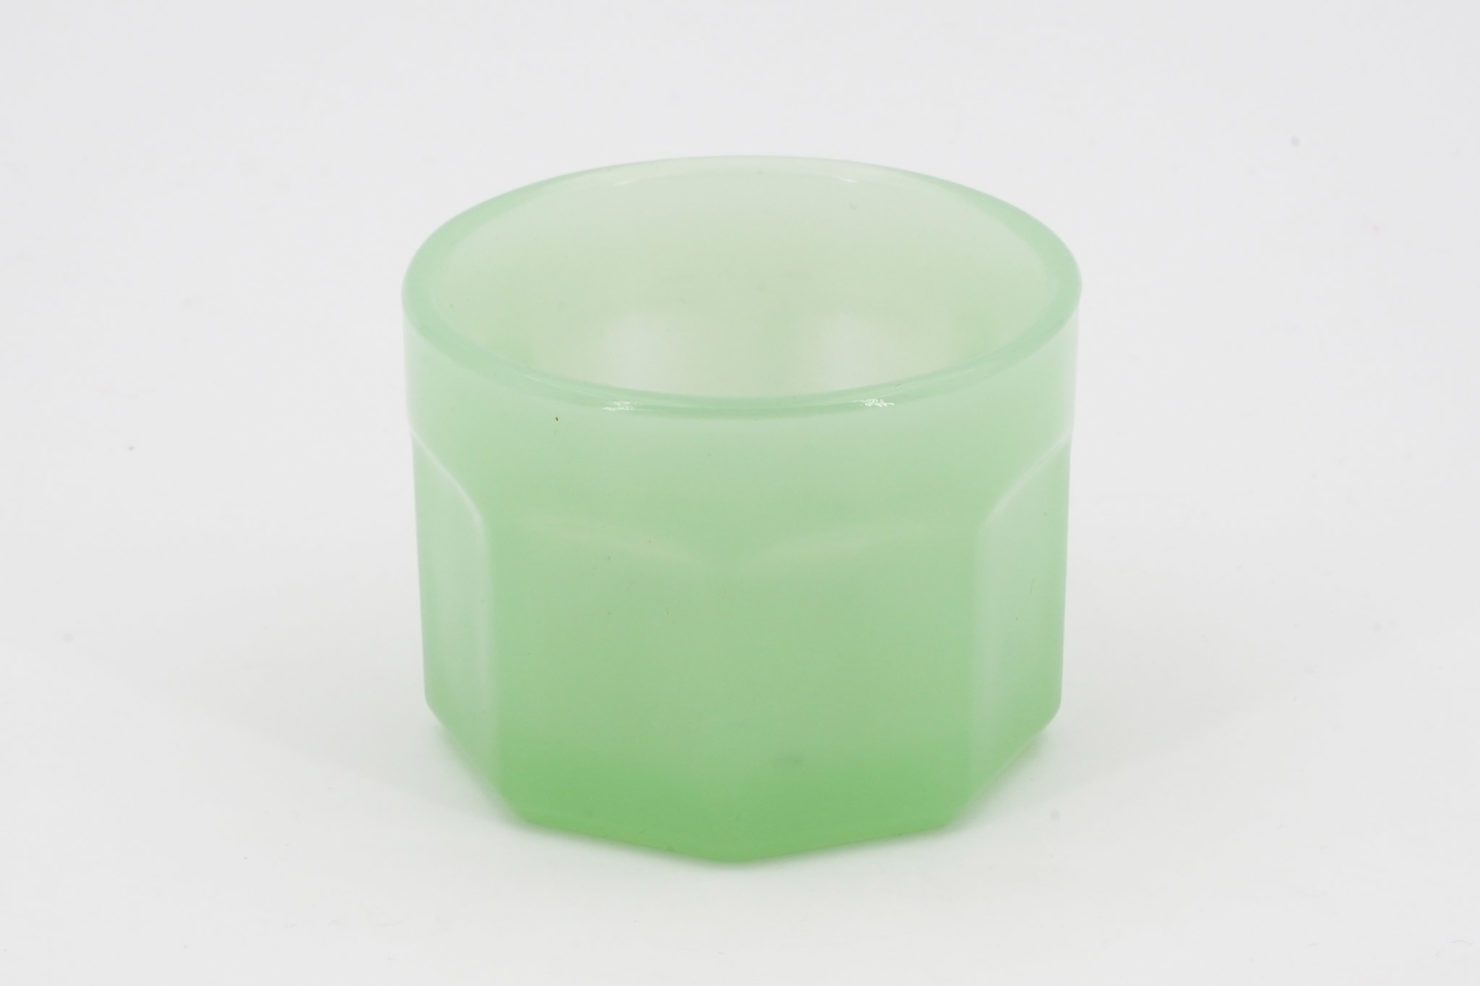 GREEN JADE SMALL GLASS 16 CL - SERAX